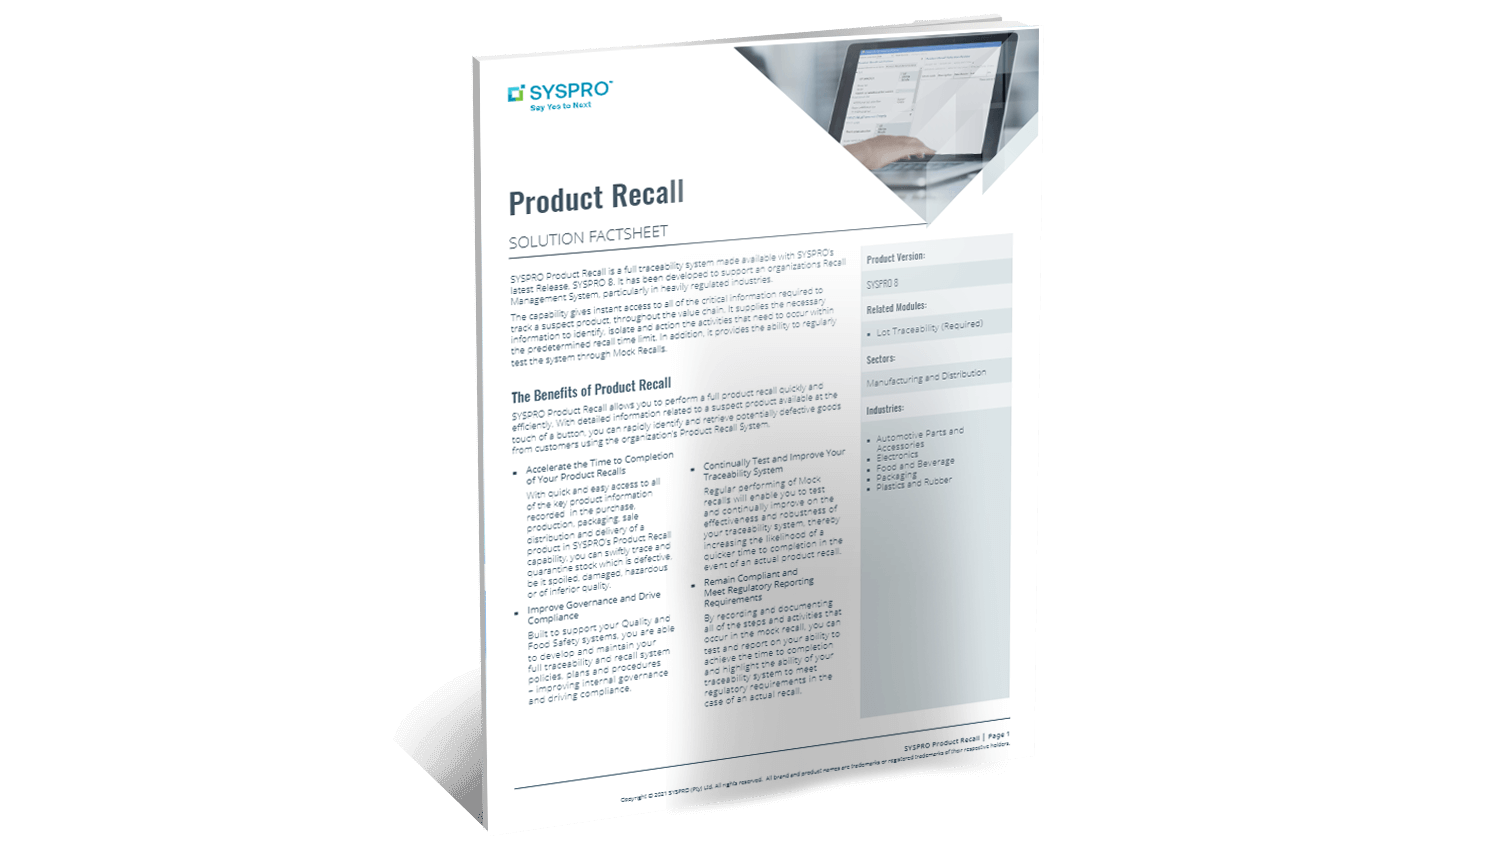 SYSPRO-ERP-software-system-product-recall-factsheet